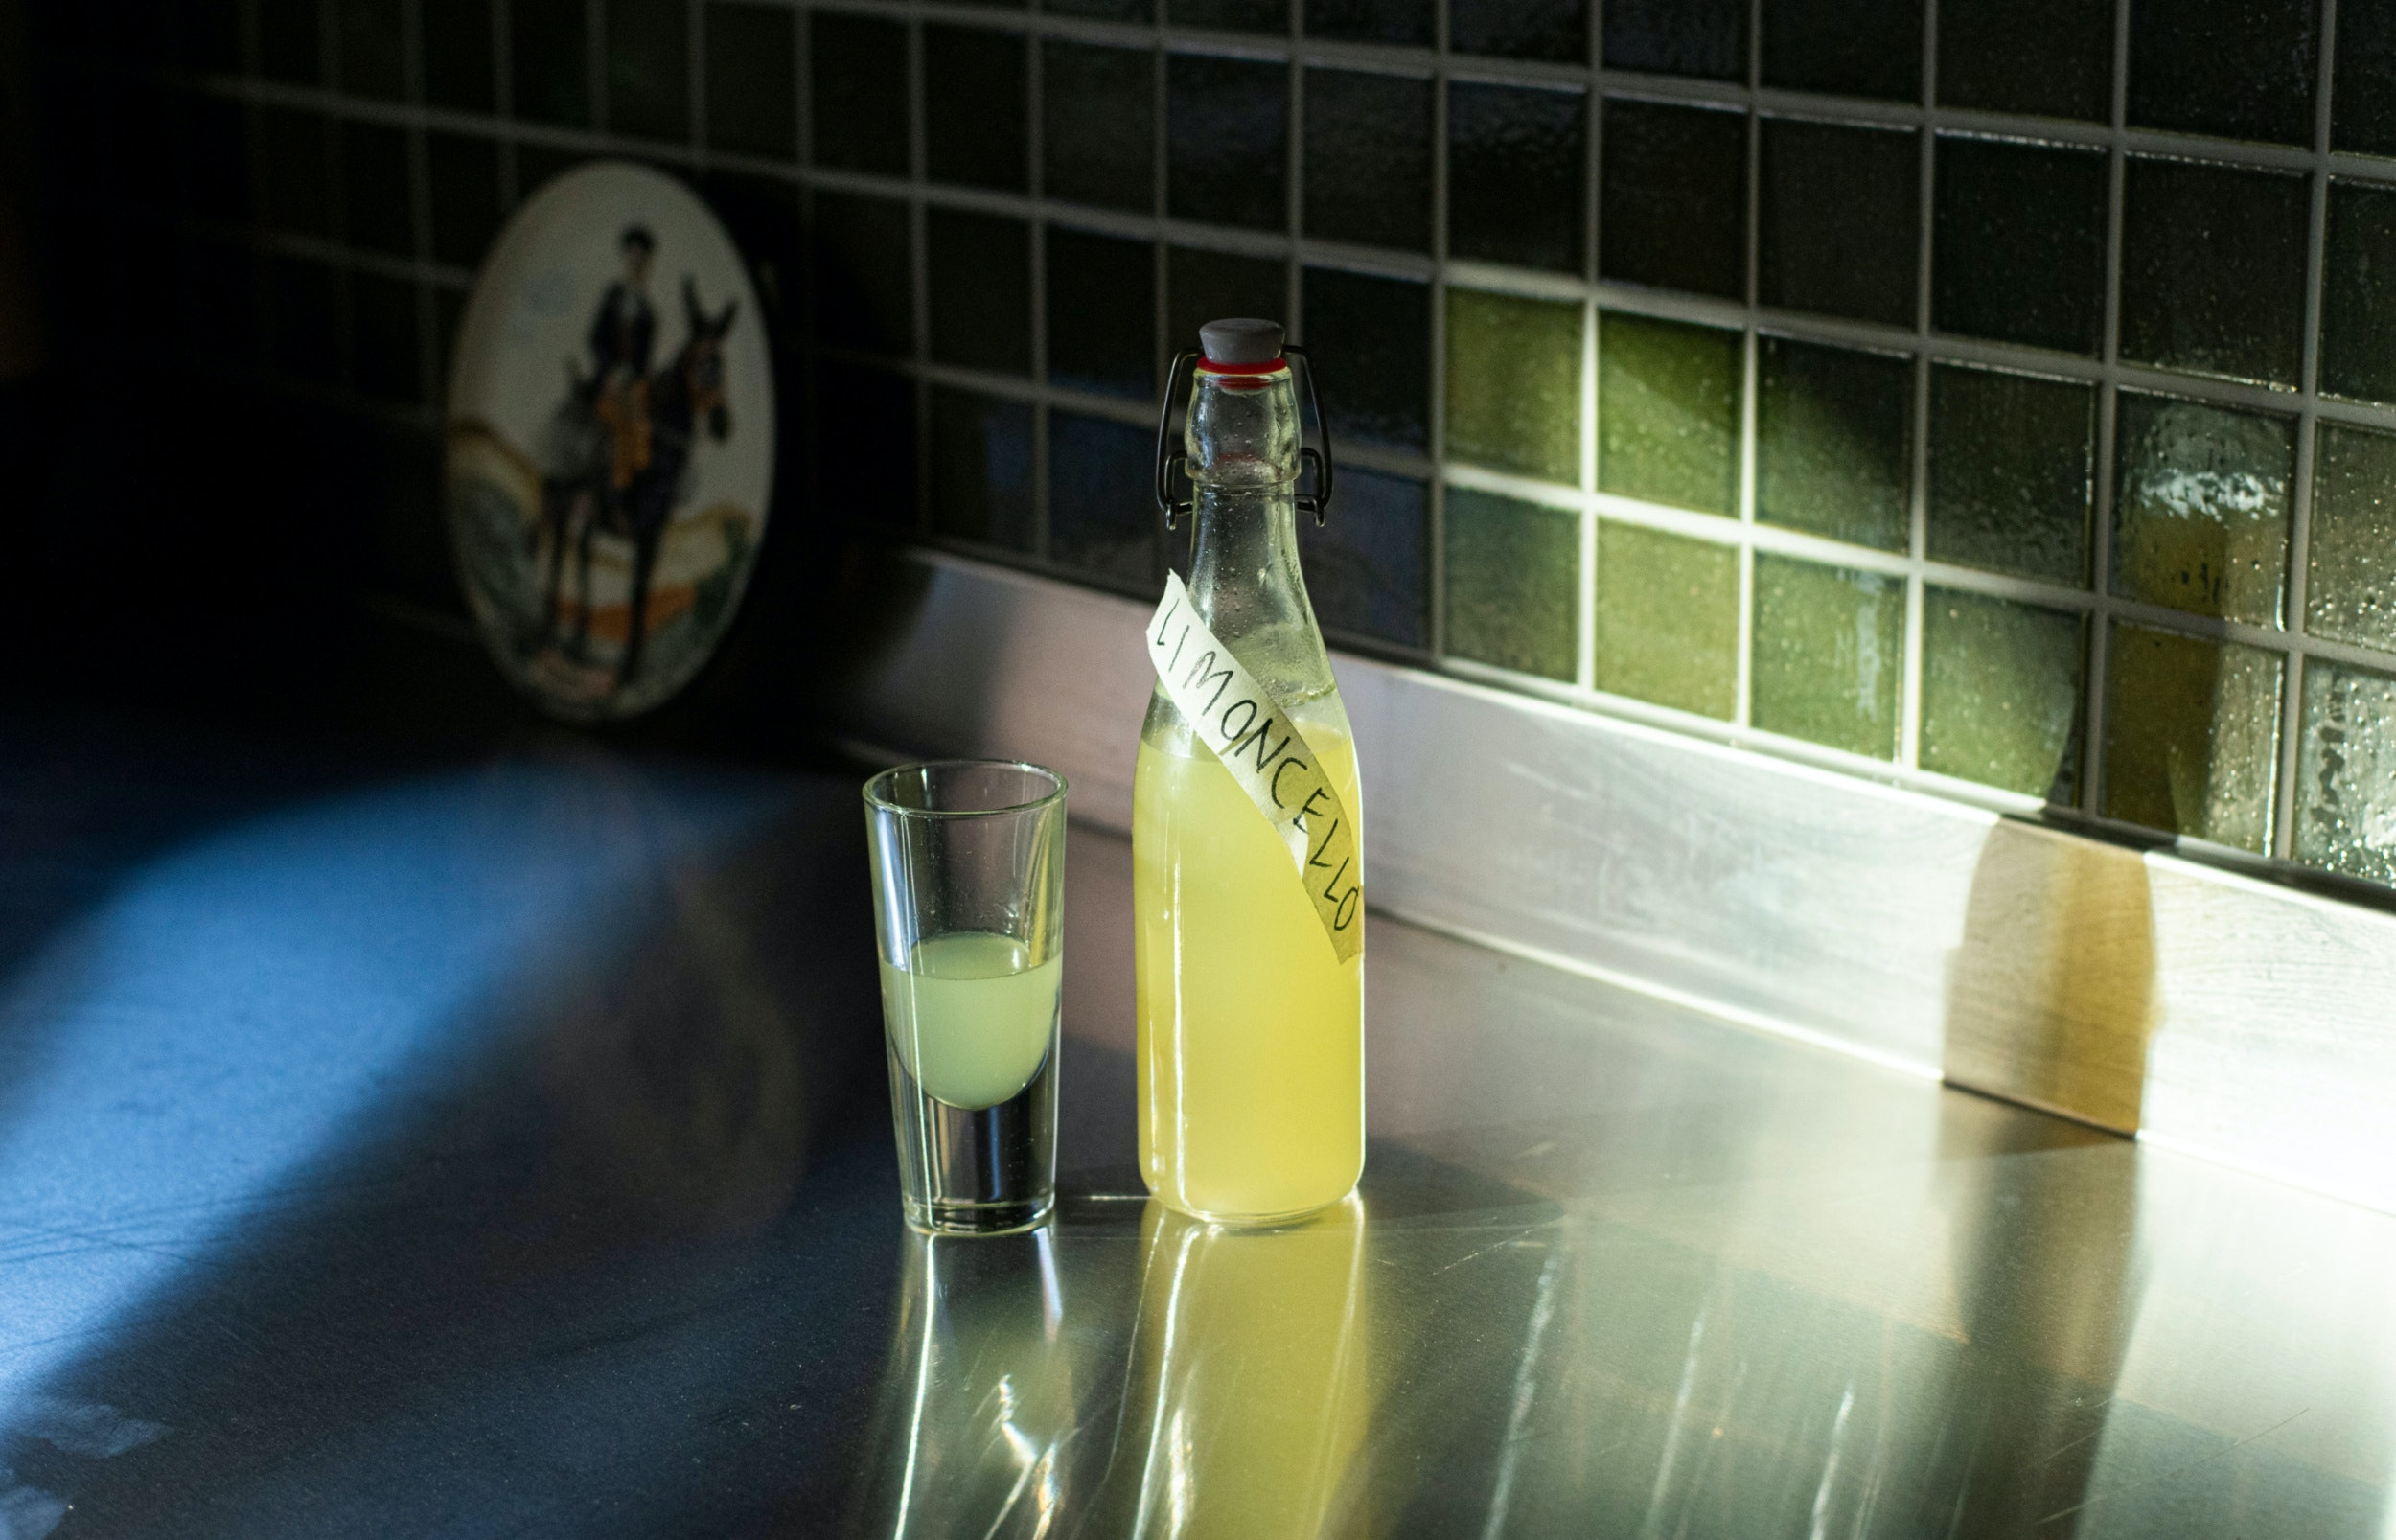 Homemade limencello by The Hardware Club. Photography by Josh Robenstone